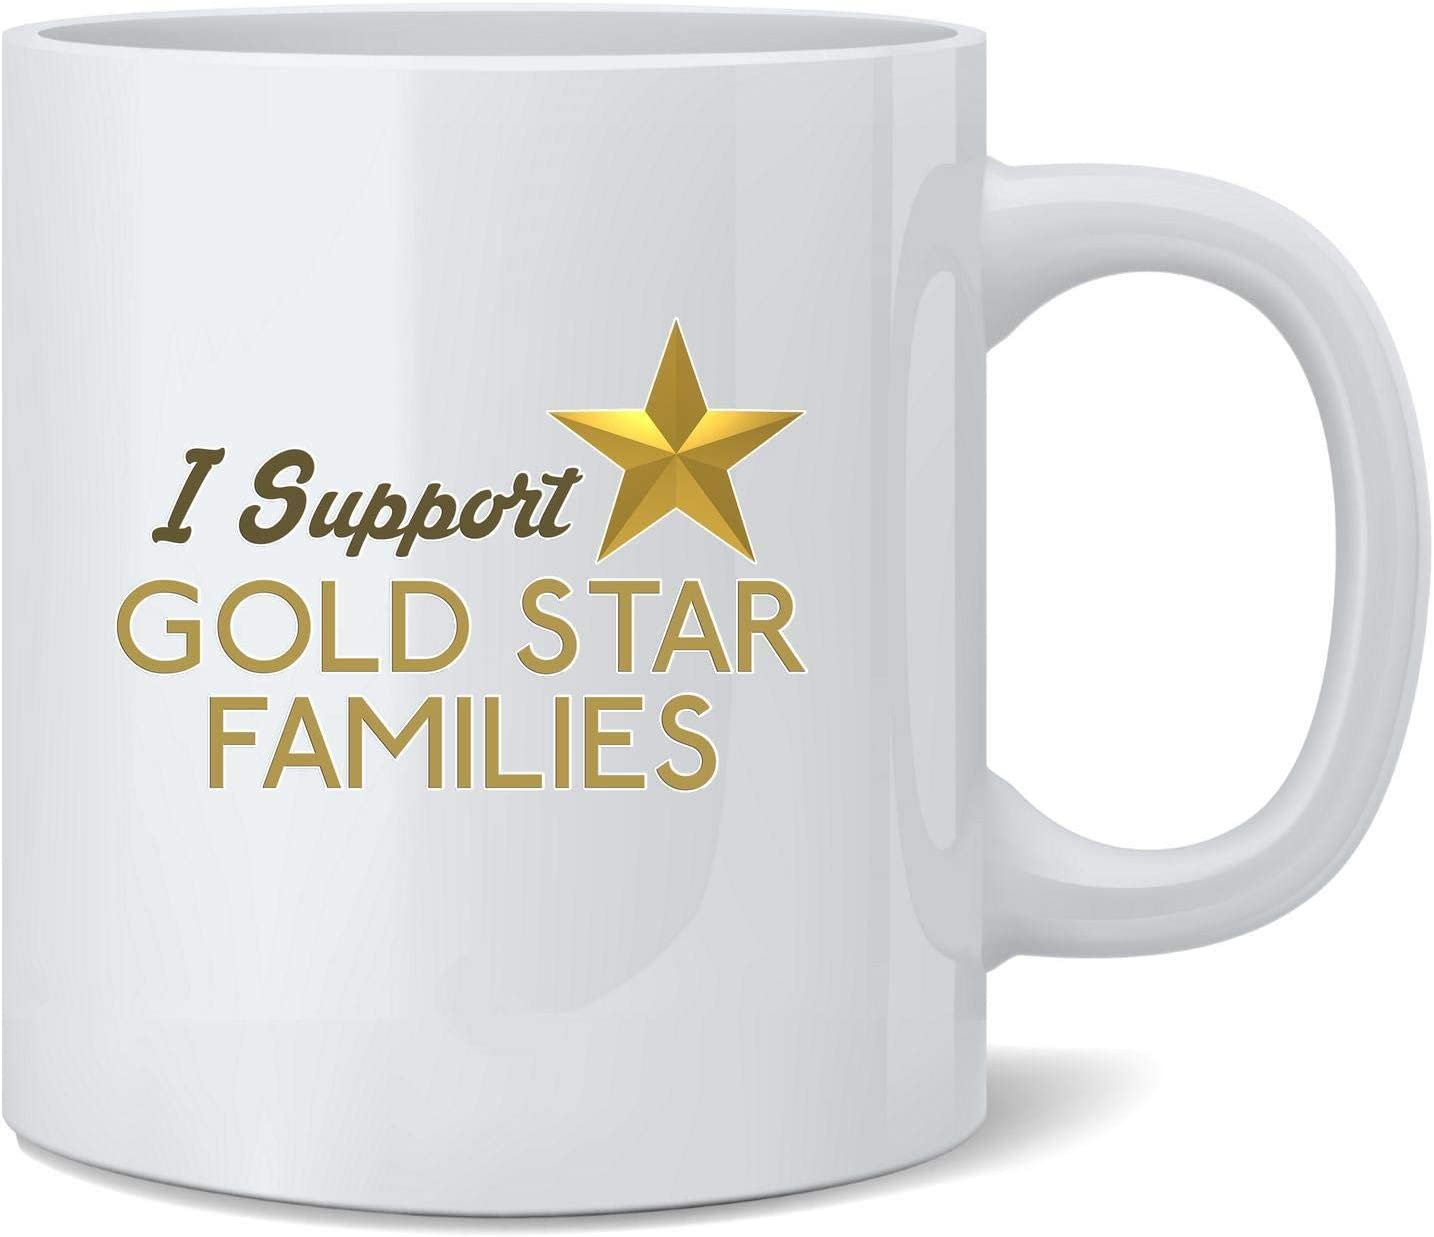 shenguang I Support Gold Star Families Military Army Veteran Ceramic Coffee Jarra Tea Cup Fun Novelty Gift 12 oz